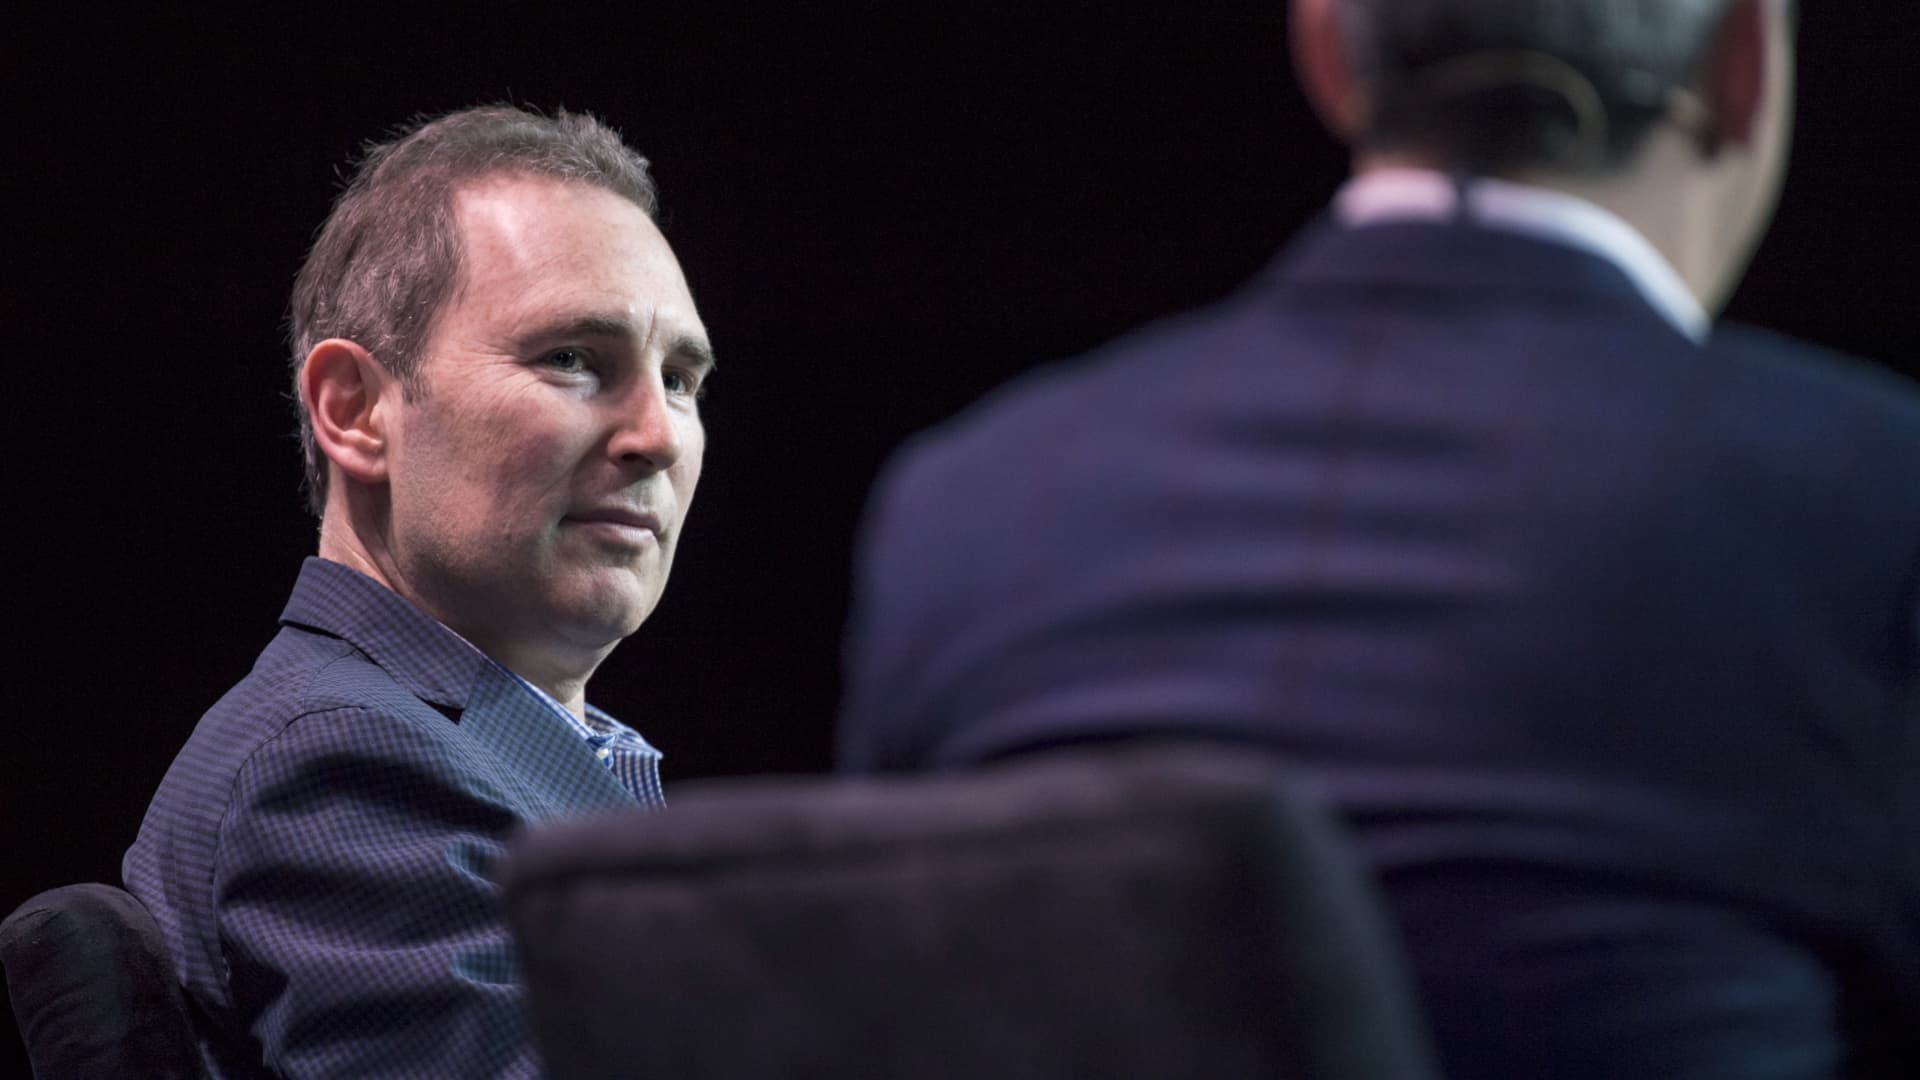 Andy Jassy, chief executive officer of web services at Amazon.com Inc., listens during the Amazon Web Services Summit in San Francisco on April 19, 2017.